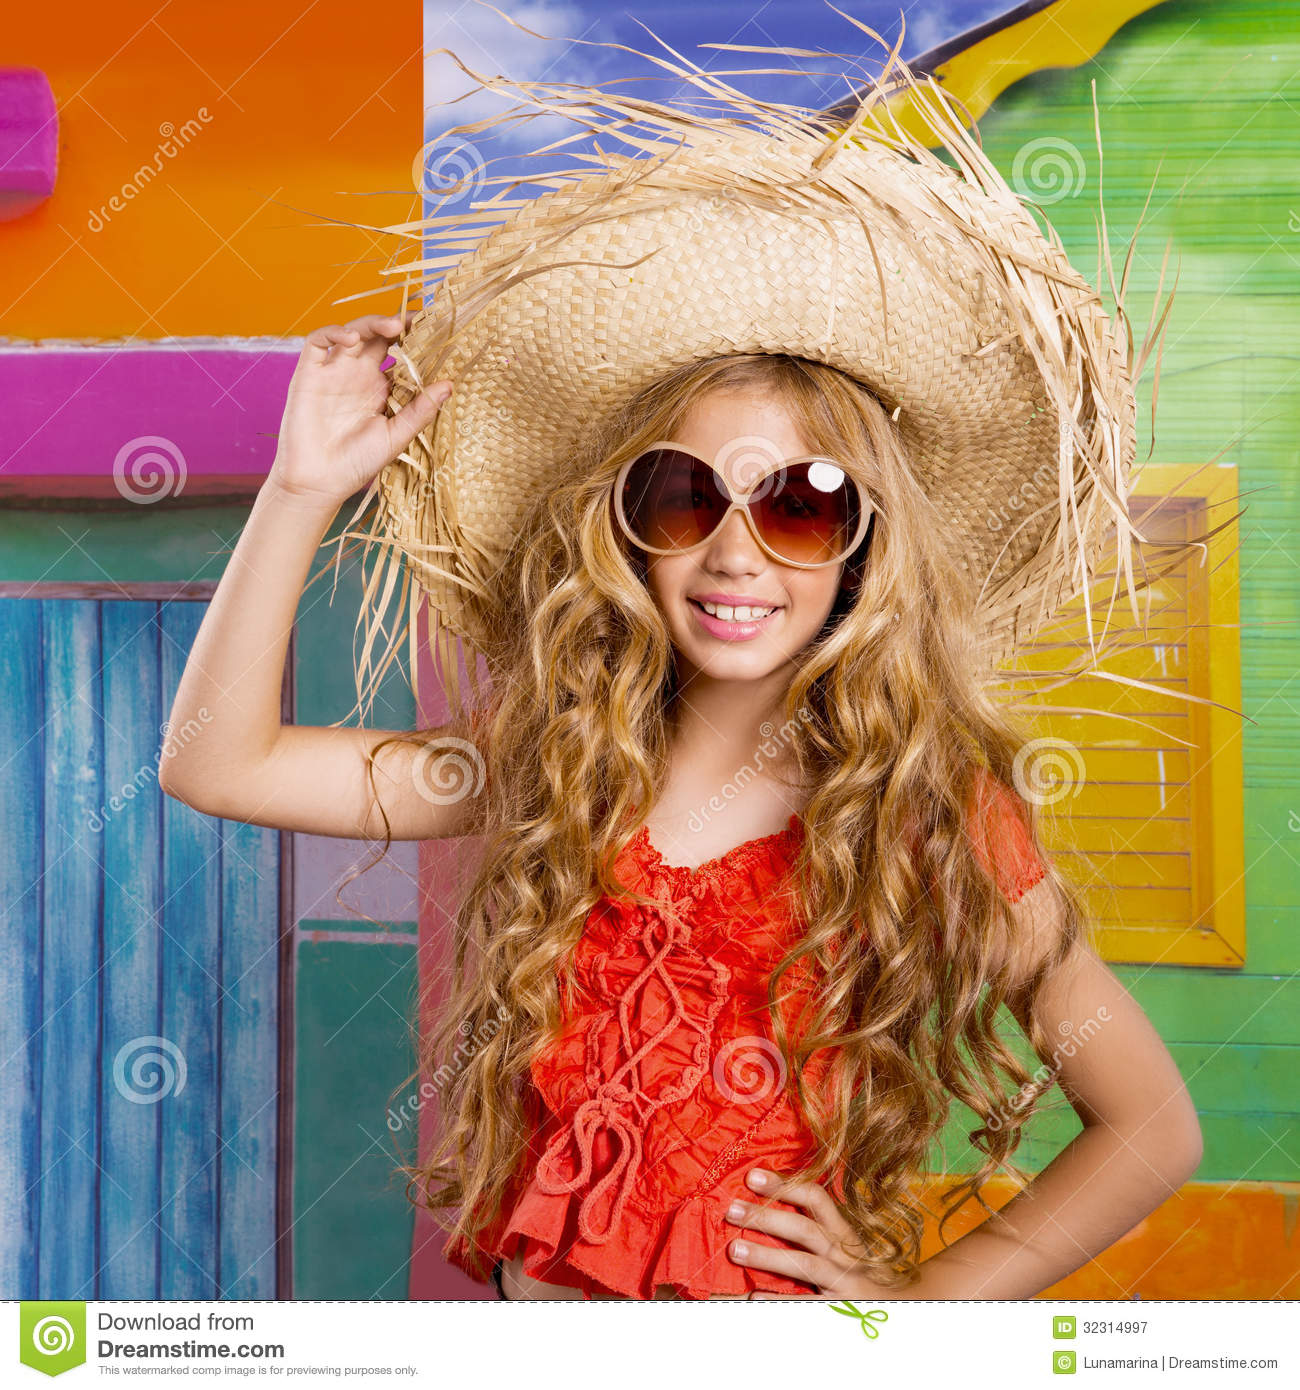 Beach Tropical Vacation Kid Blond Girl With Fashion: Blond Children Happy Tourist Girl Beach Hat And Sunglasses